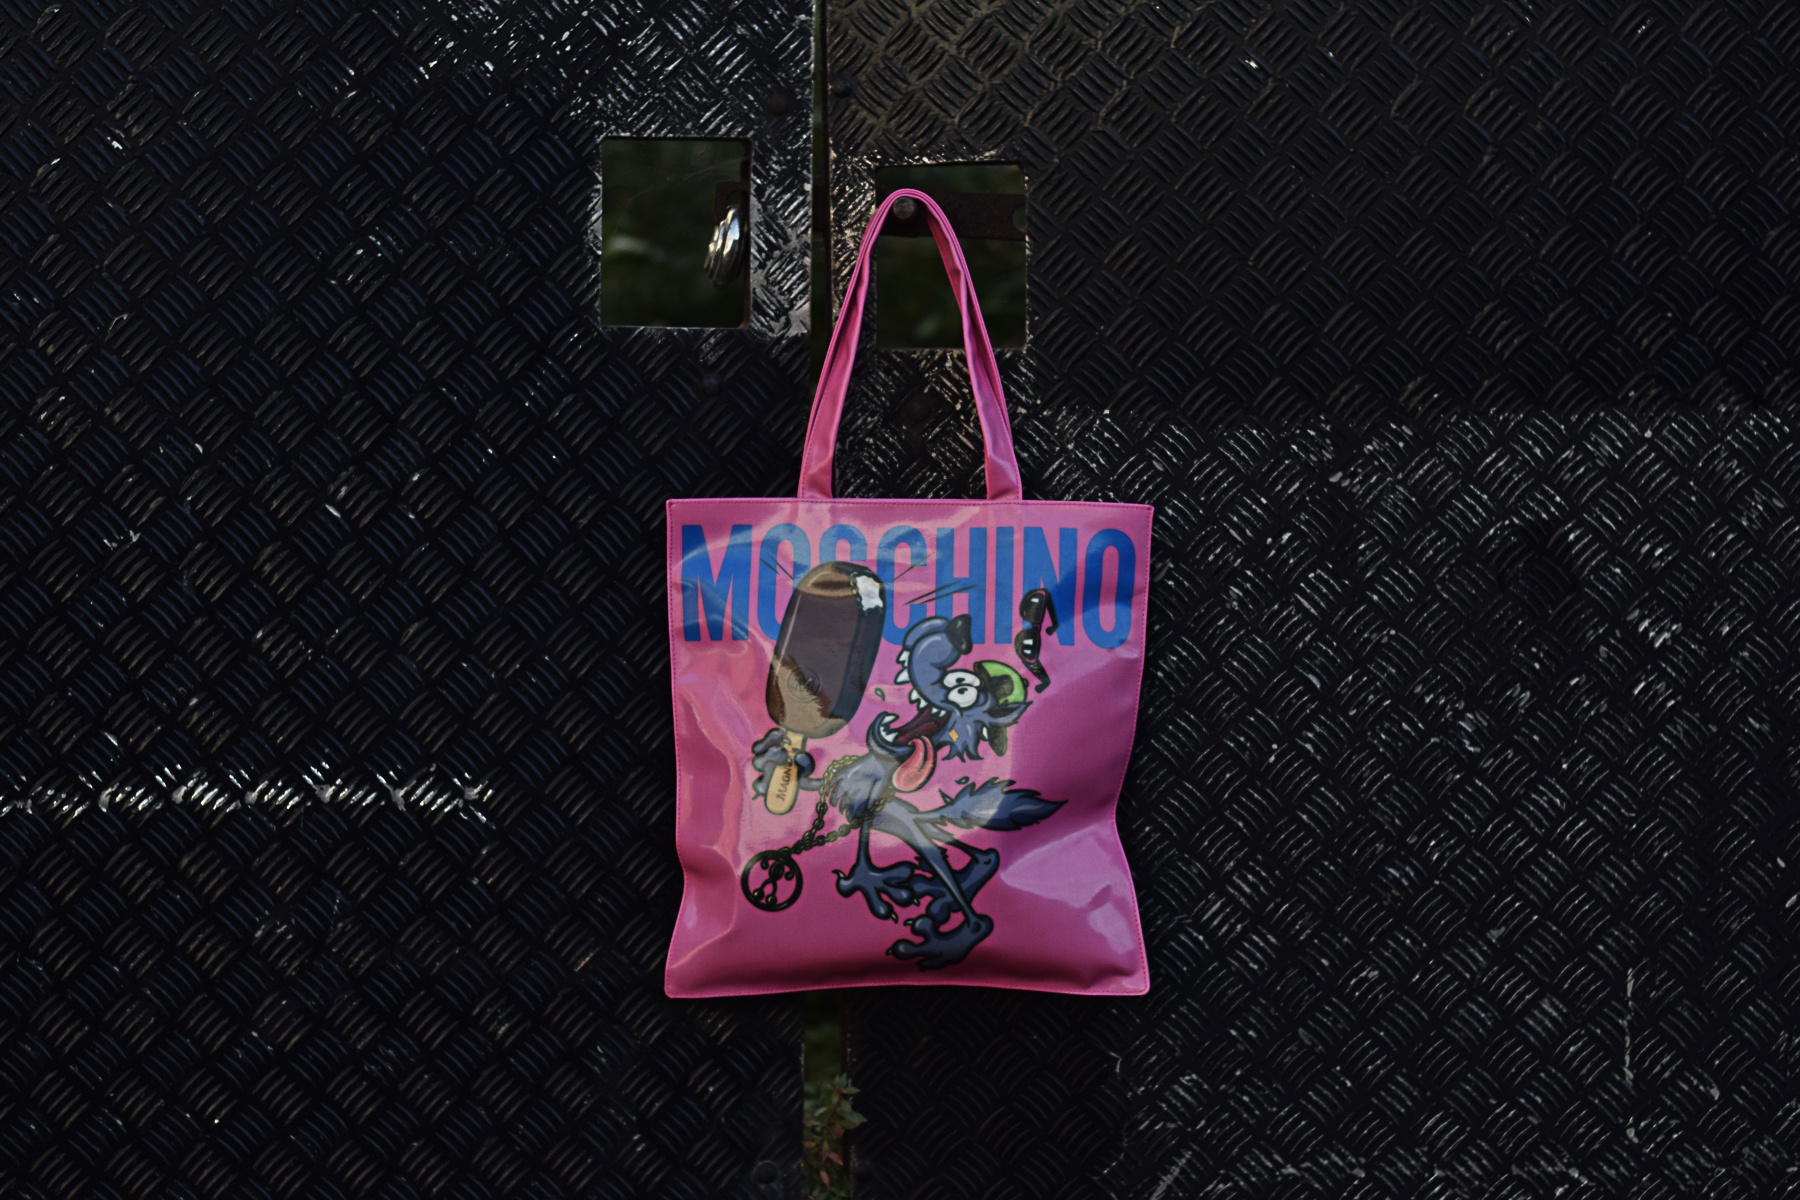 Magnum x Moschino Bag Giveaway - Chapters by S.